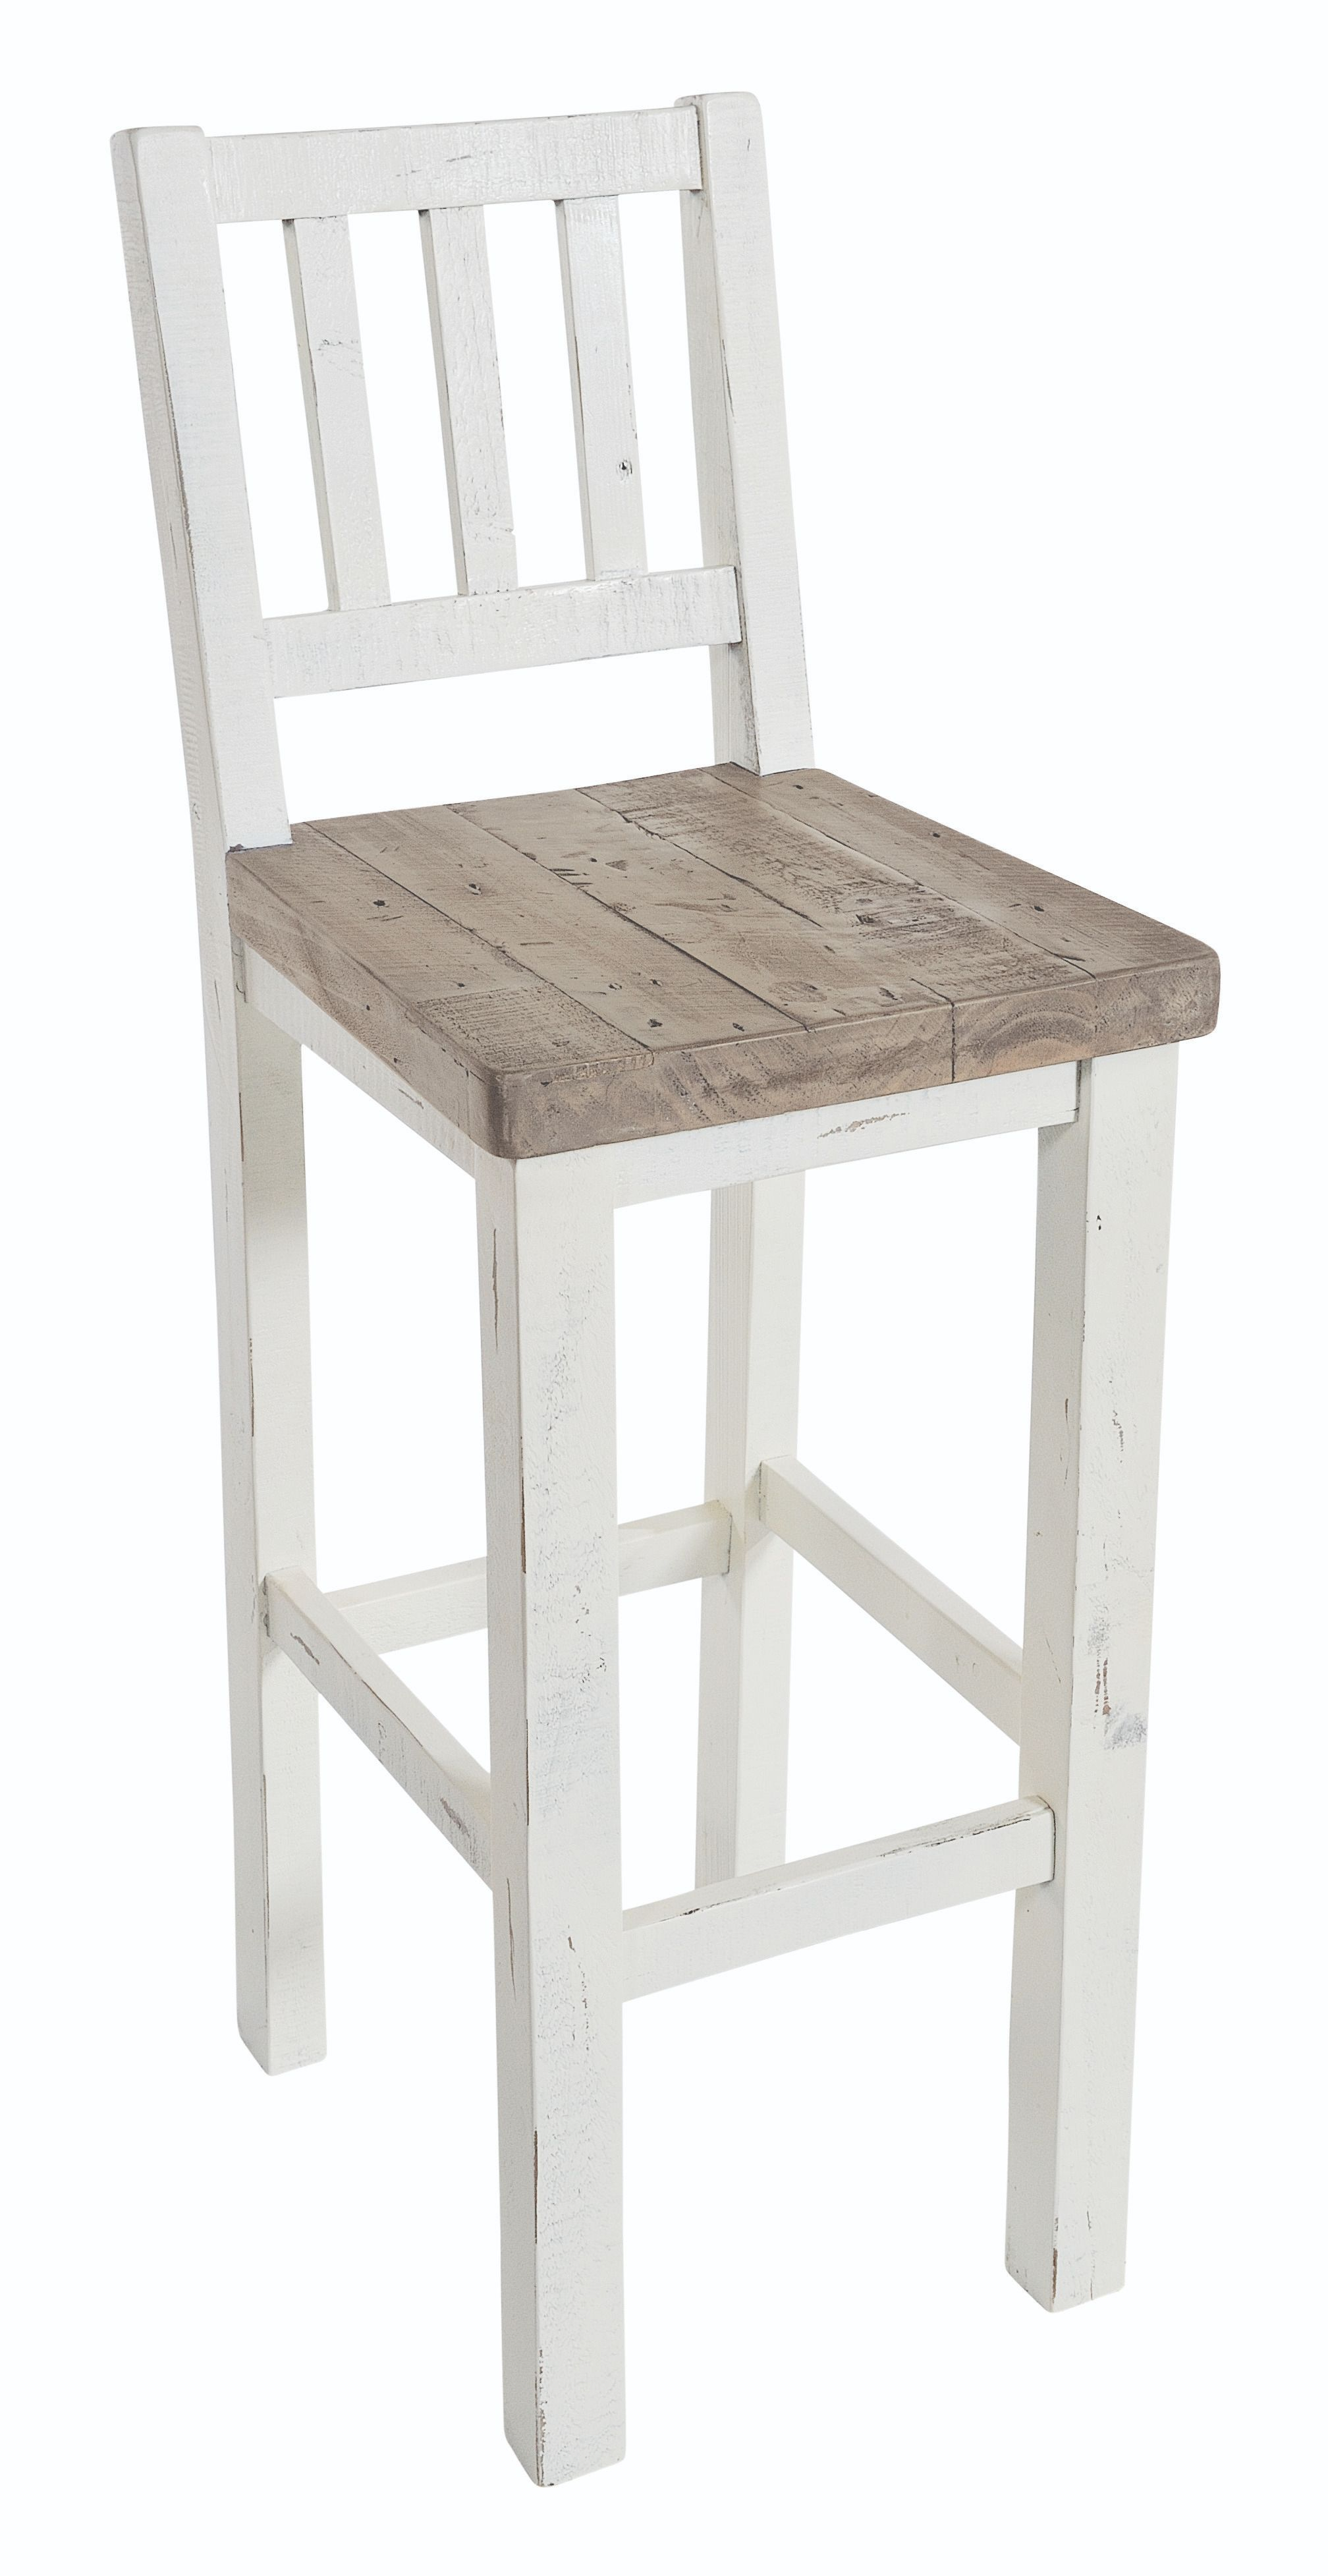 PURBECK BAR STOOL Distressed Paint & Driftwood